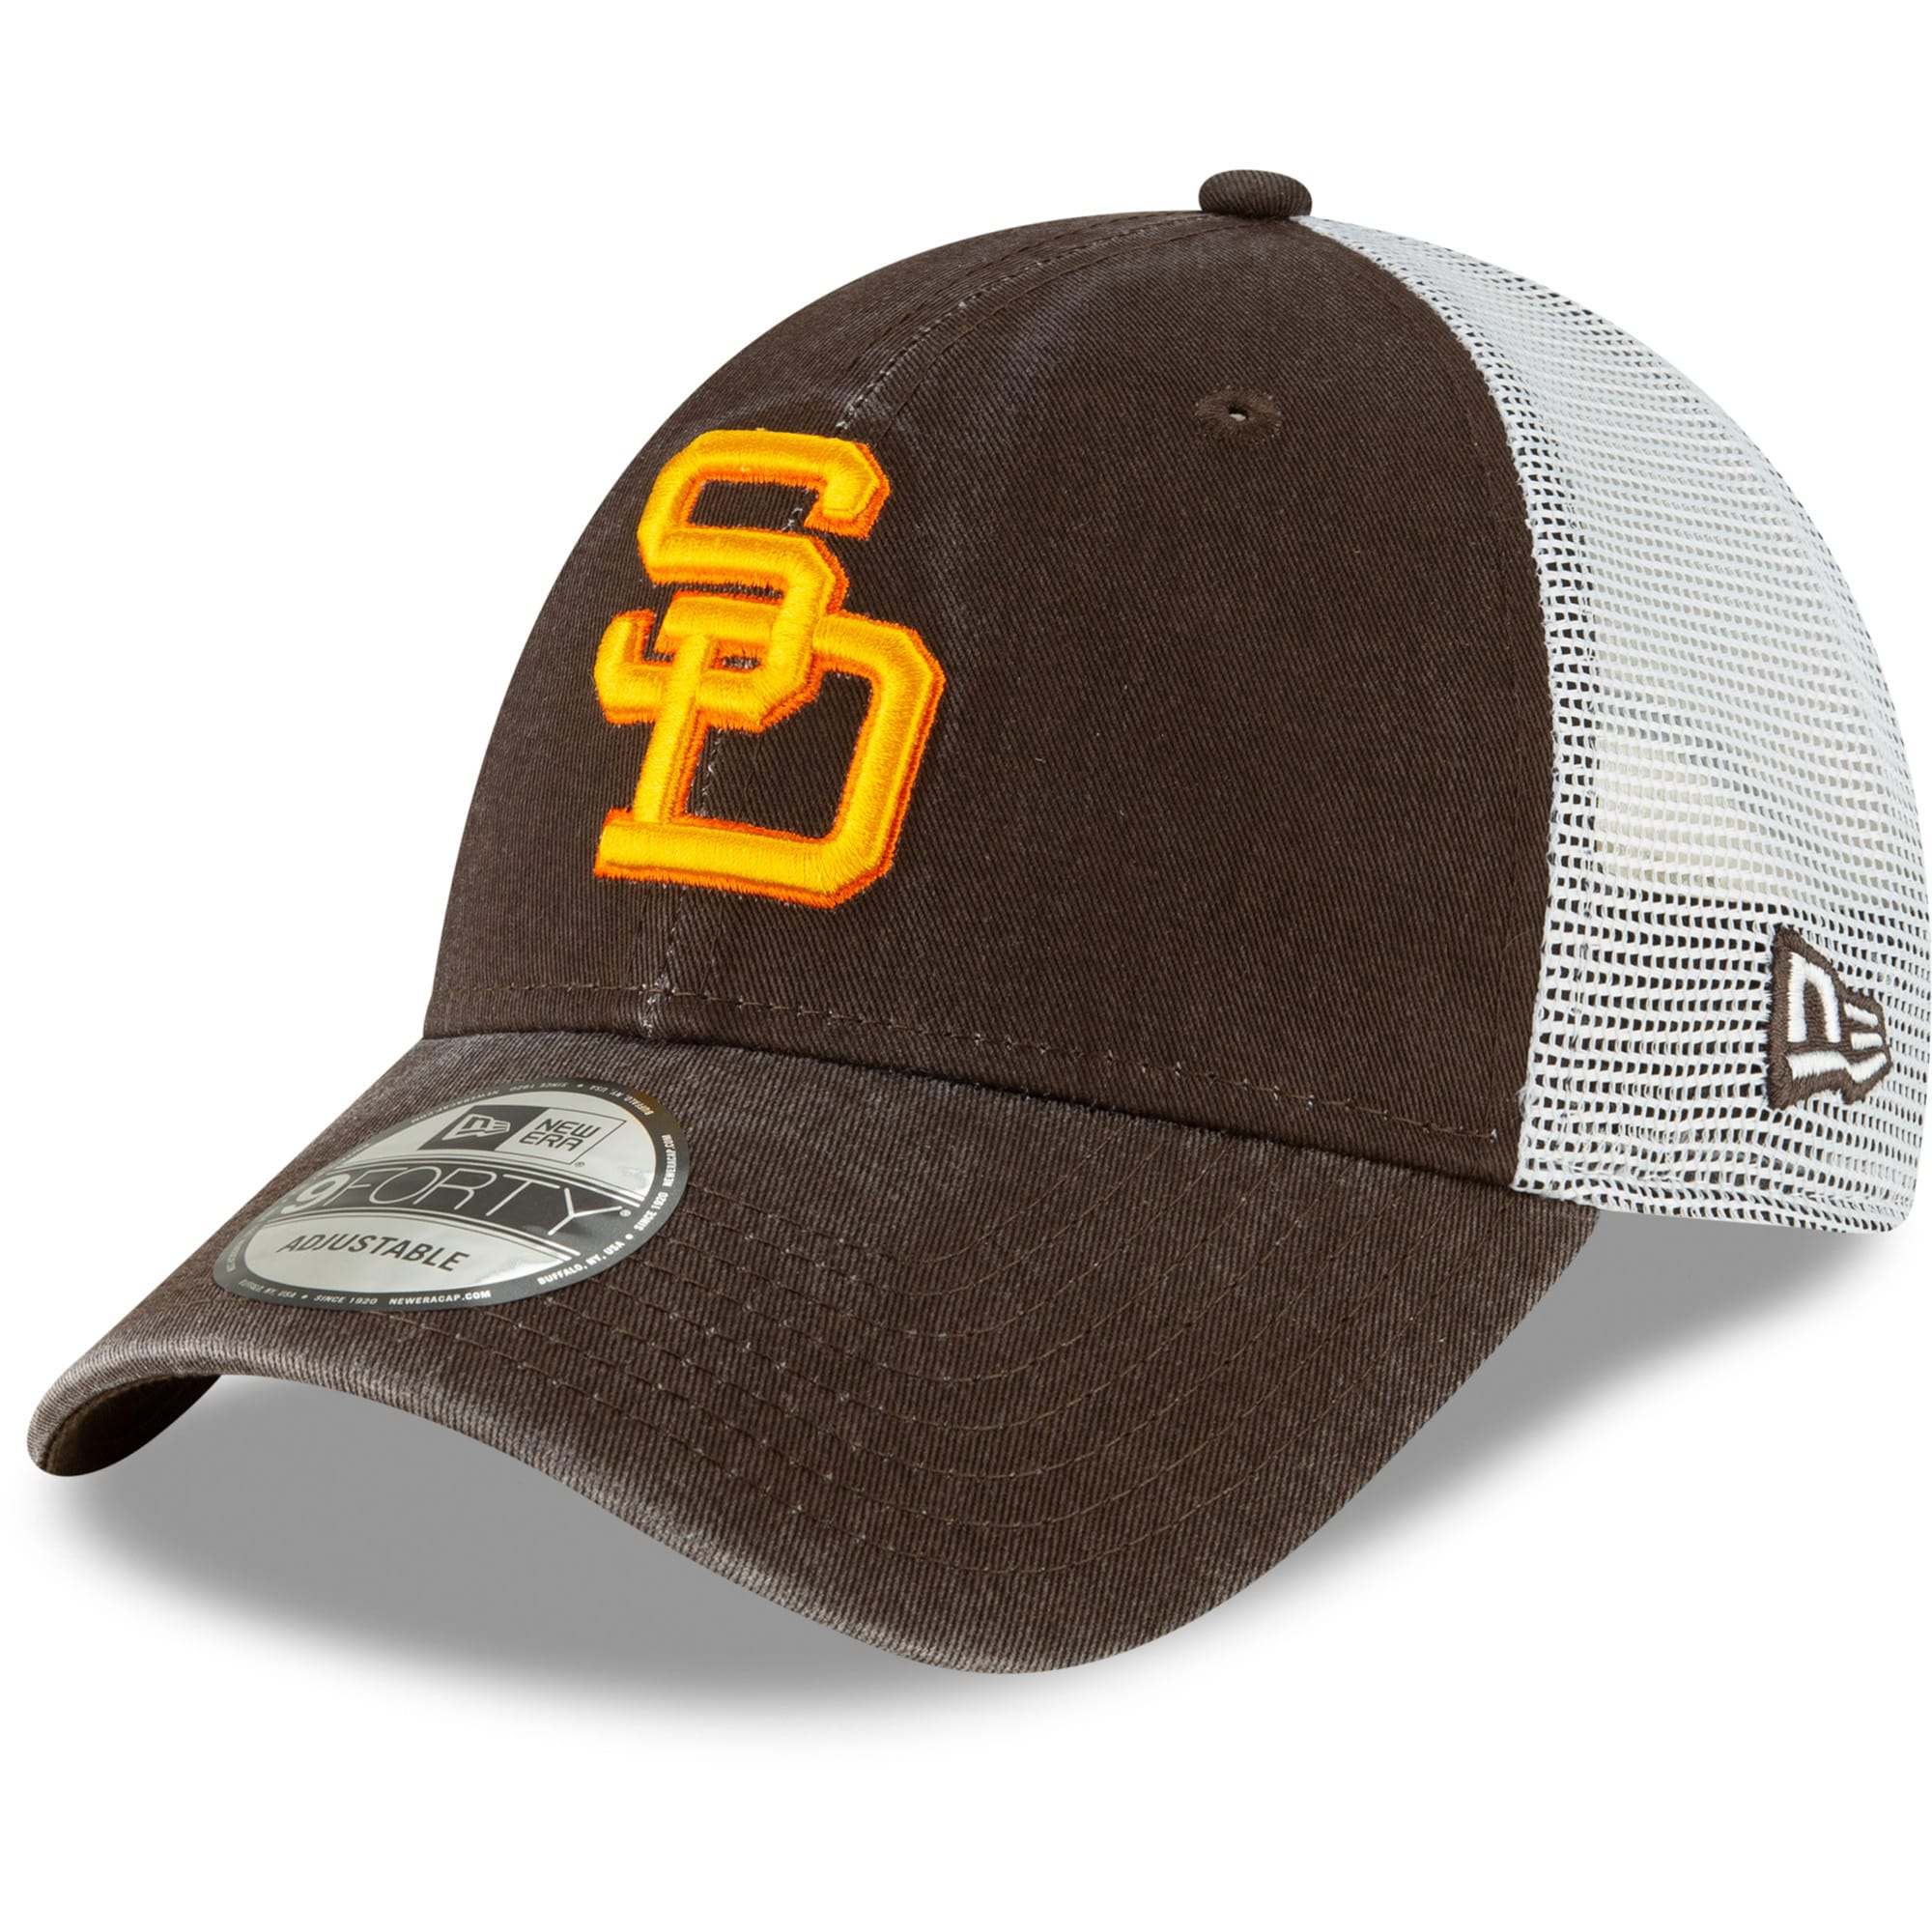 San Diego Padres New Era Cooperstown Collection 1980 Trucker 9FORTY Adjustable Hat - Brown